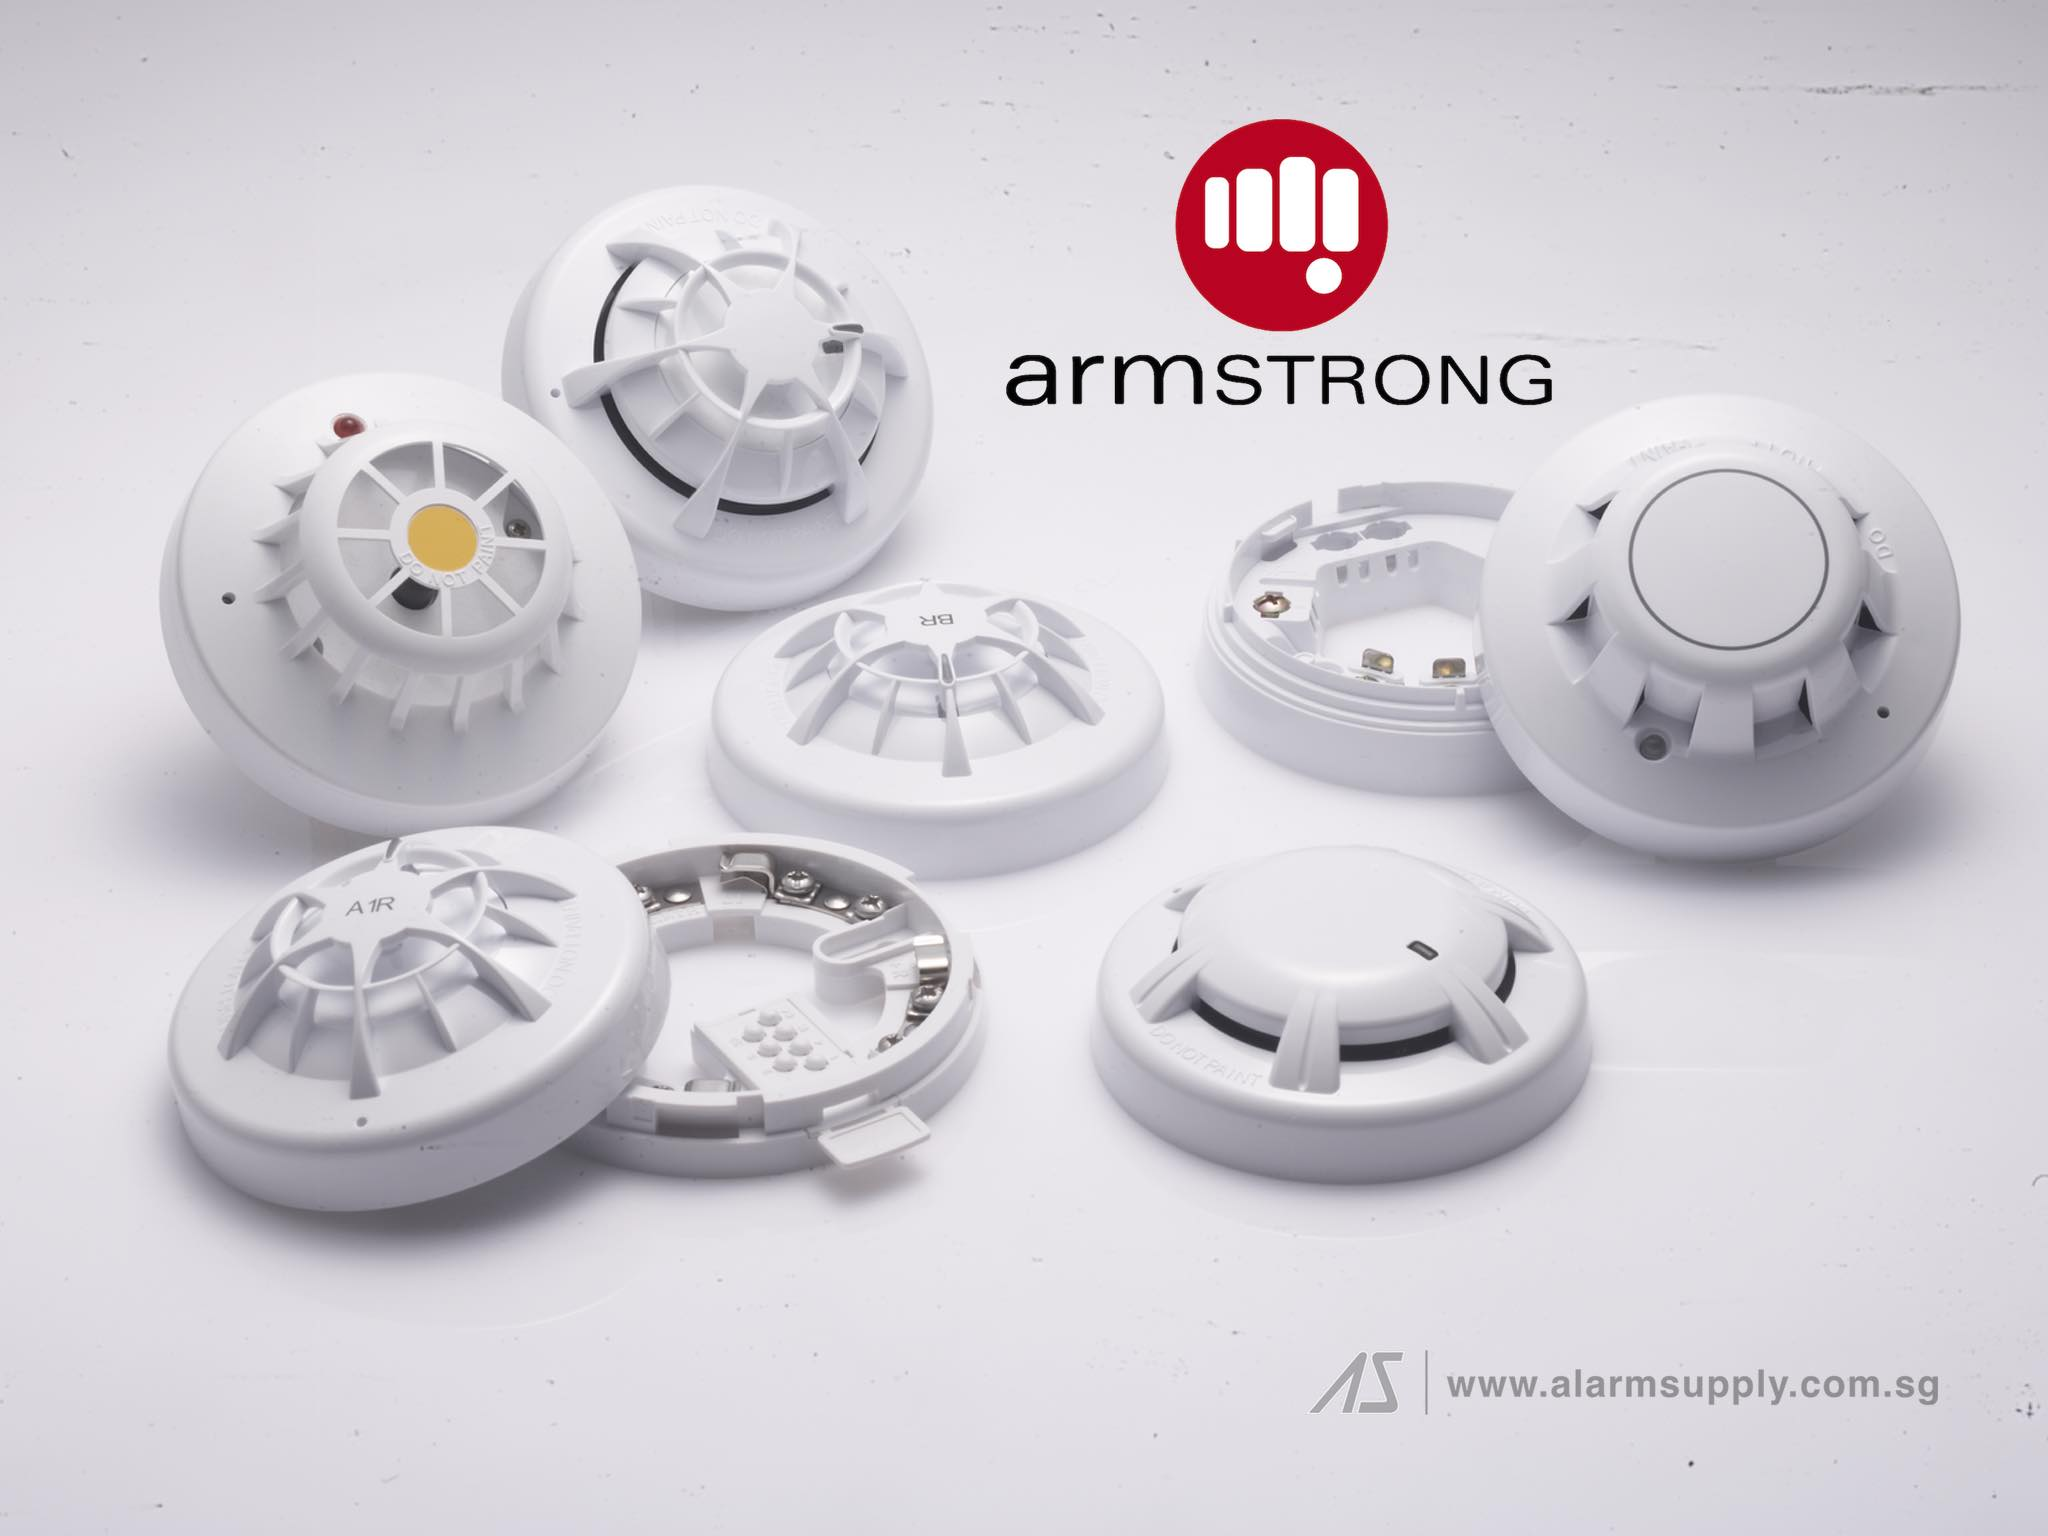 Armstrong detectors